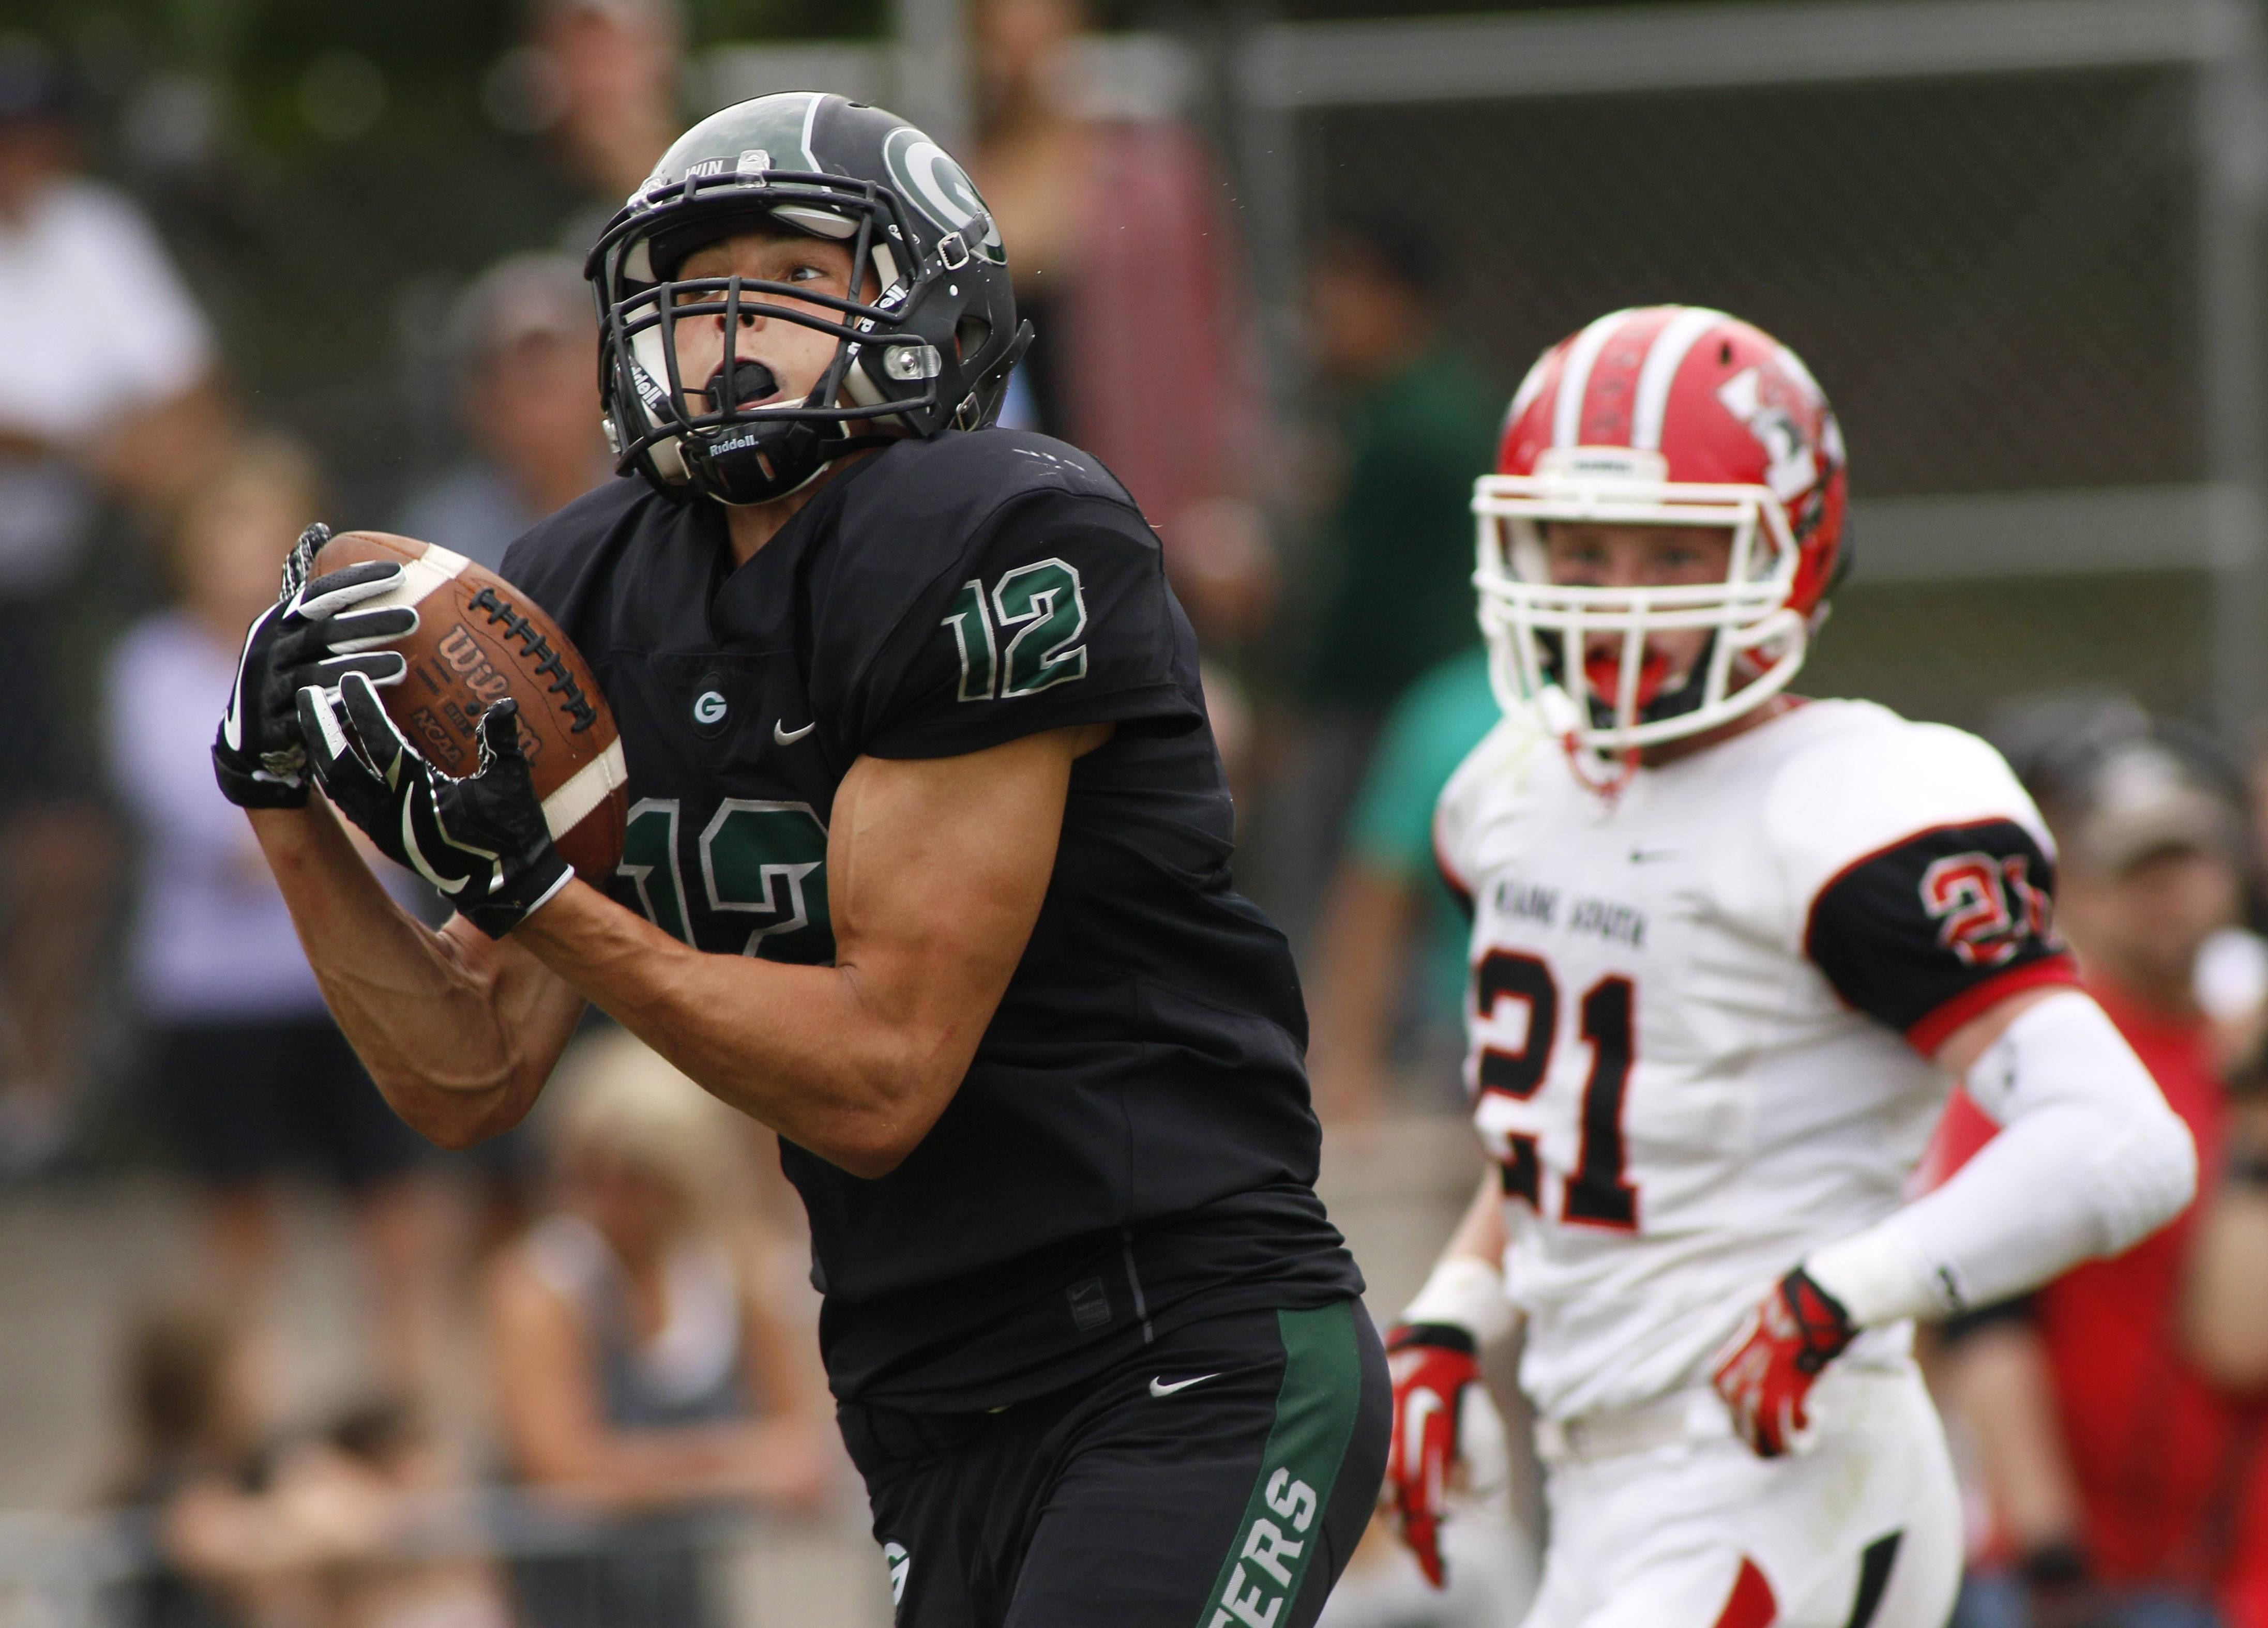 Images: Maine South vs. Glenbard West football